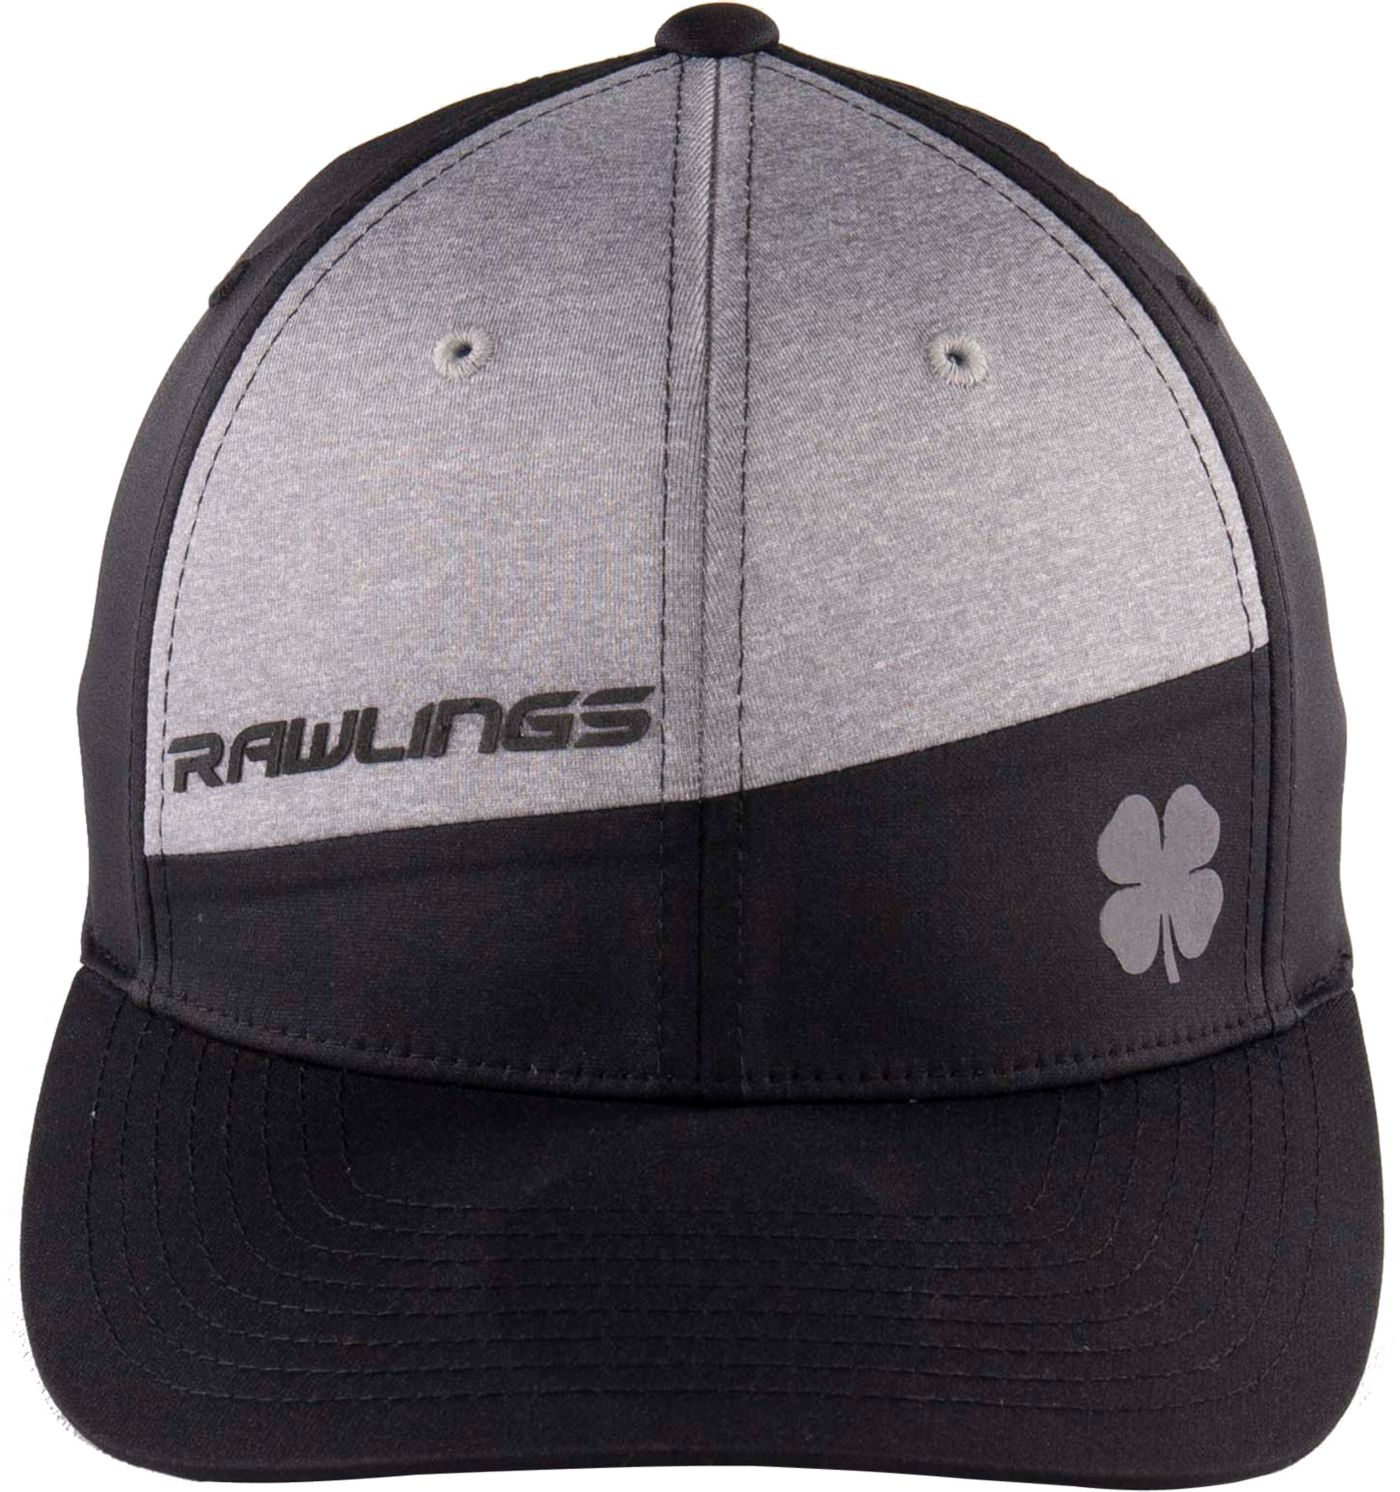 Black Clover + Rawlings Curved Brim Hat